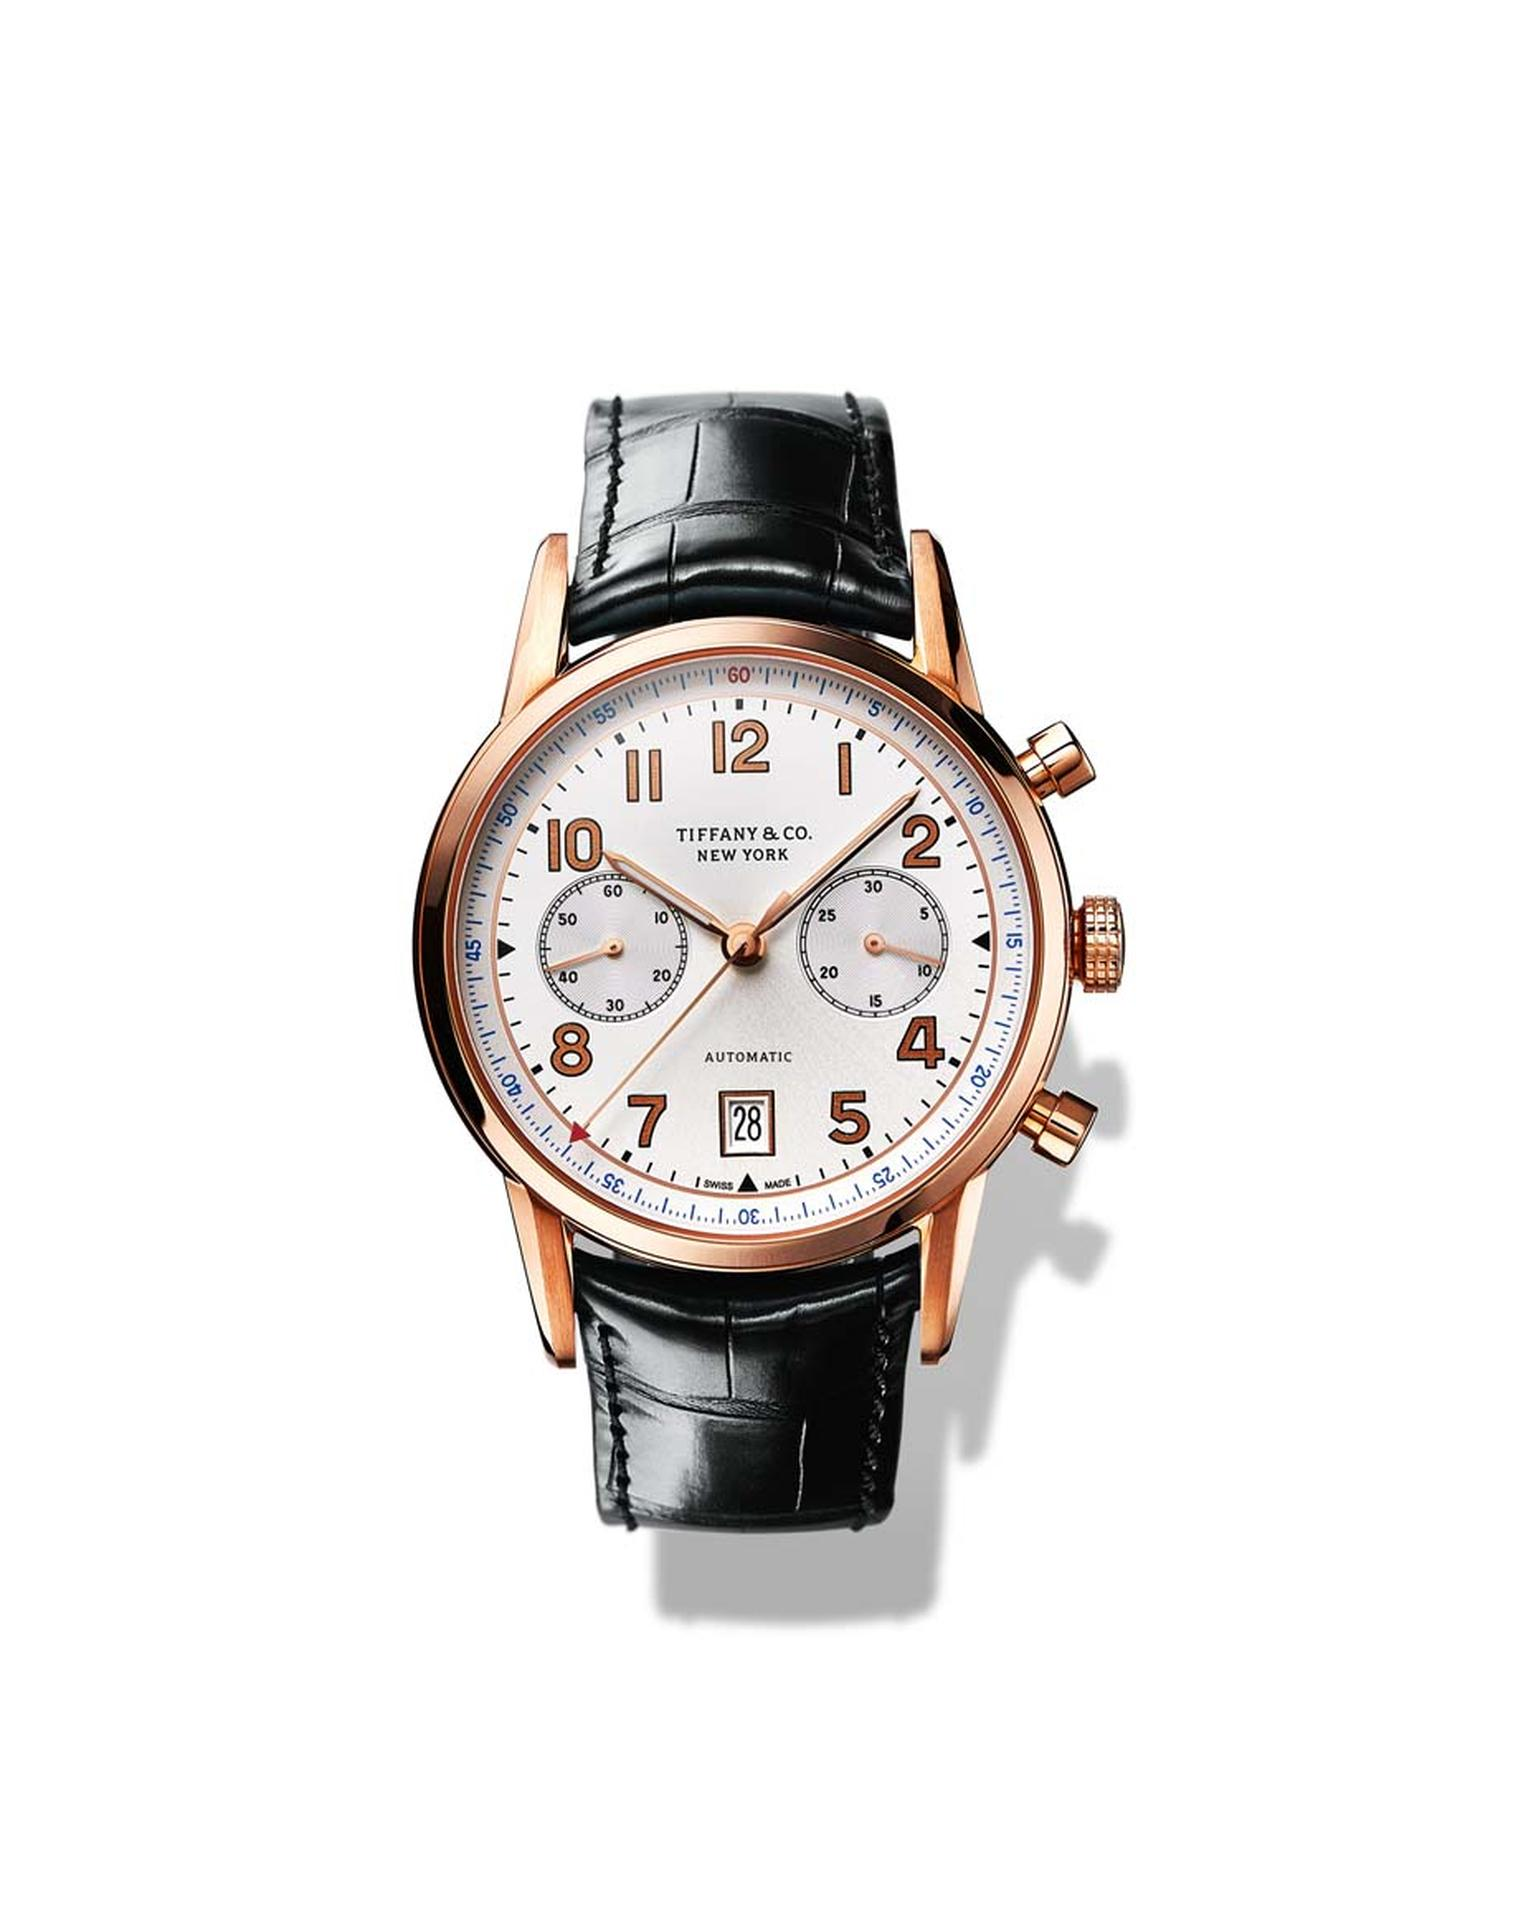 Tiffany & Co. CT60 Chronograph watch in a 42mm rose gold case with a white dial and a precision Swiss mechanical movement.